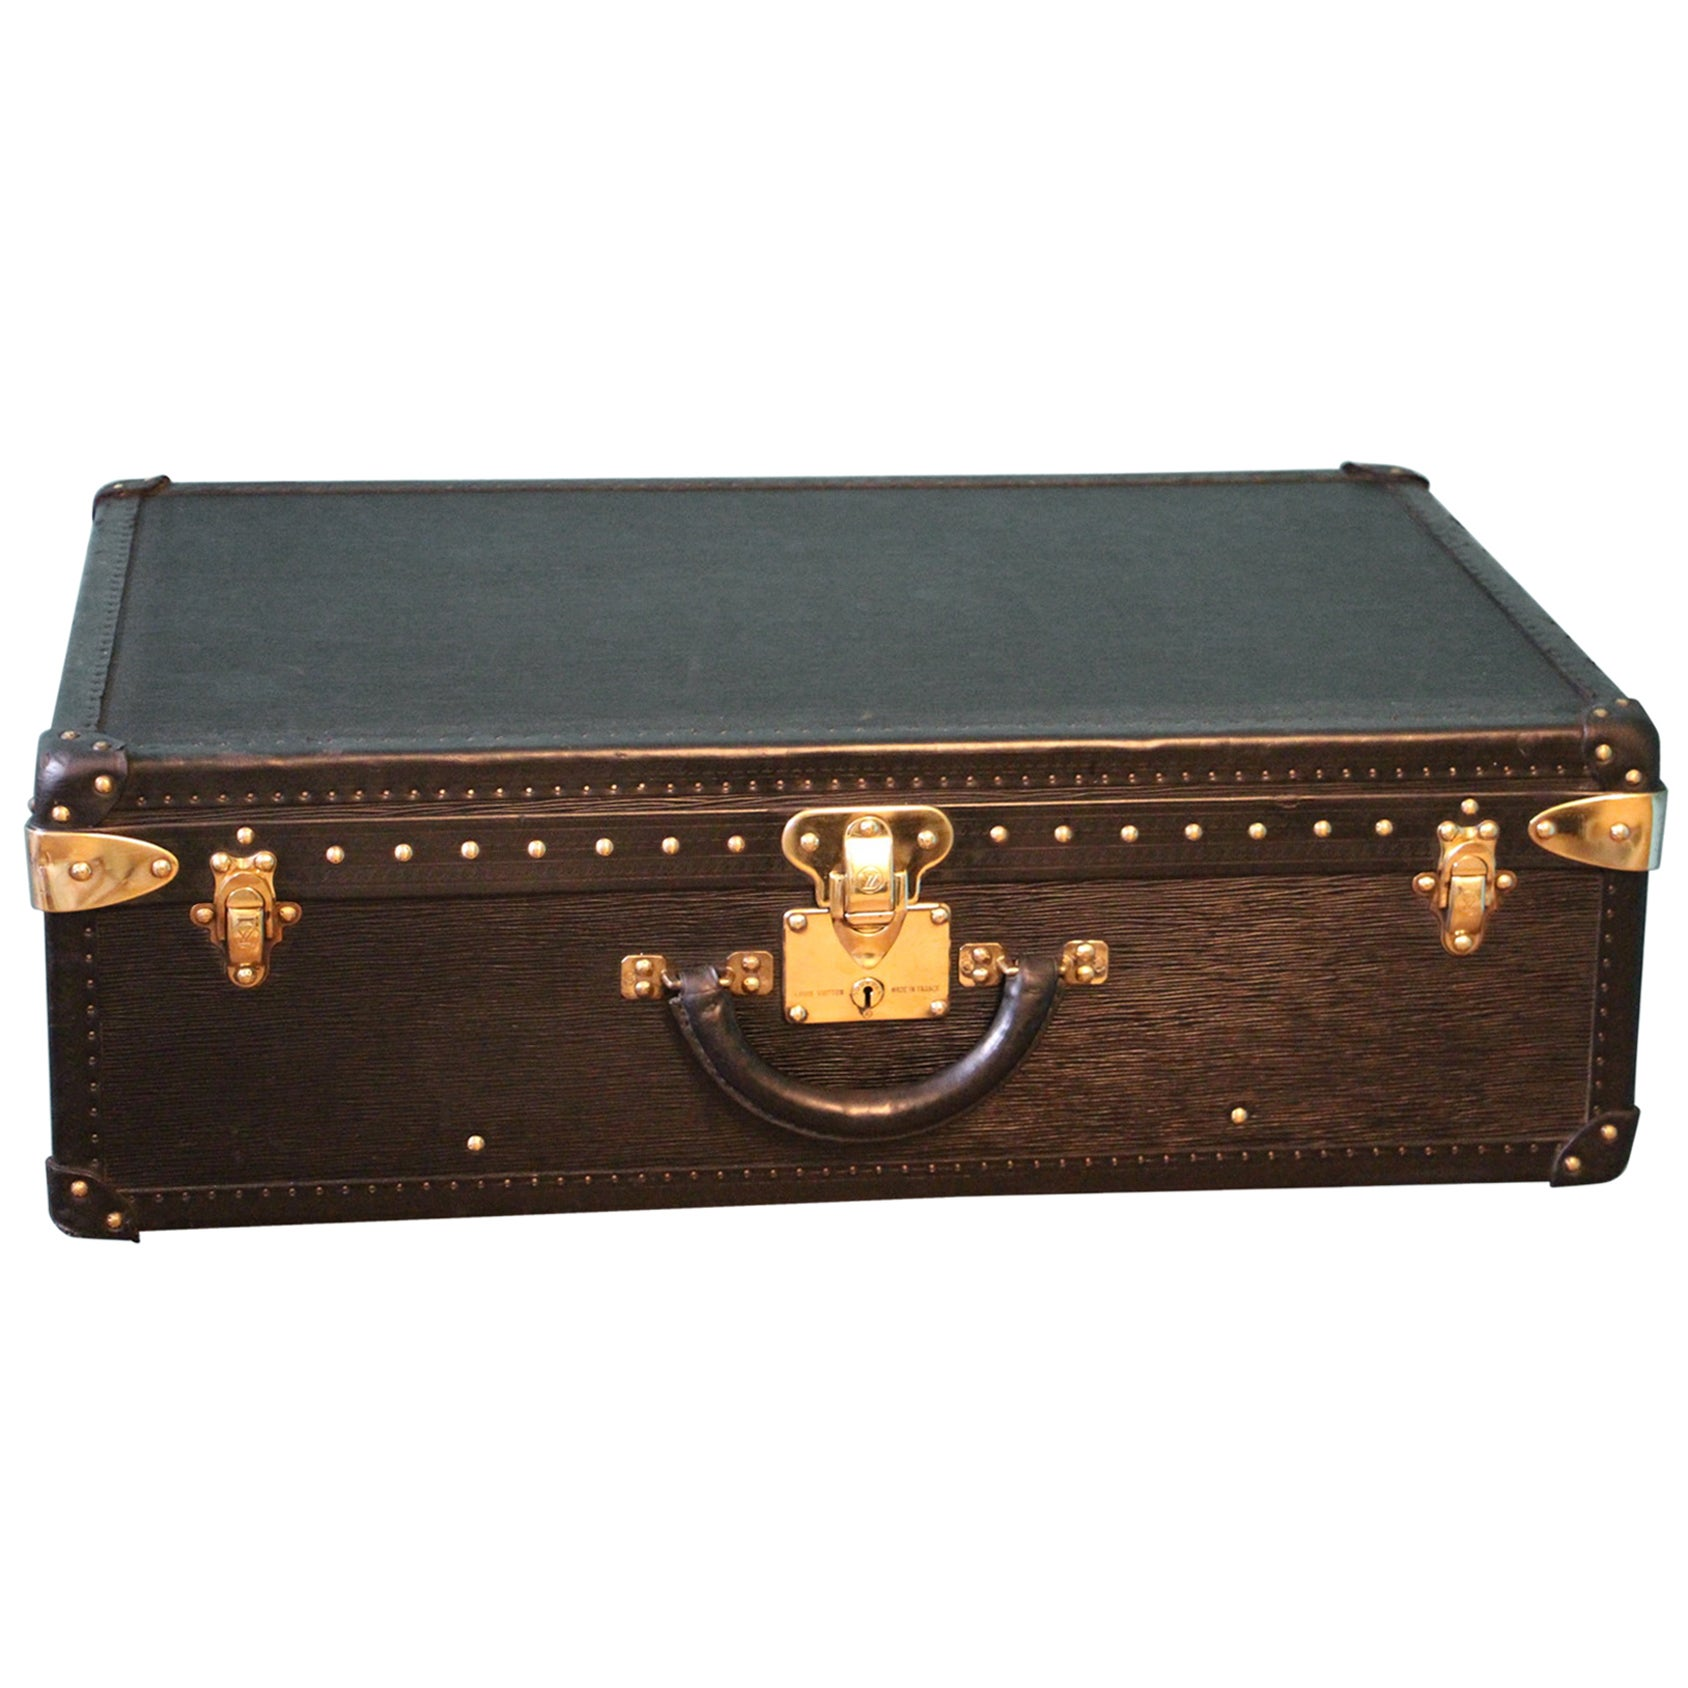 Black Louis Vuitton Alzer 70 Suitcase Louis Vuitton Suitcase Louis Vuitton Trunk